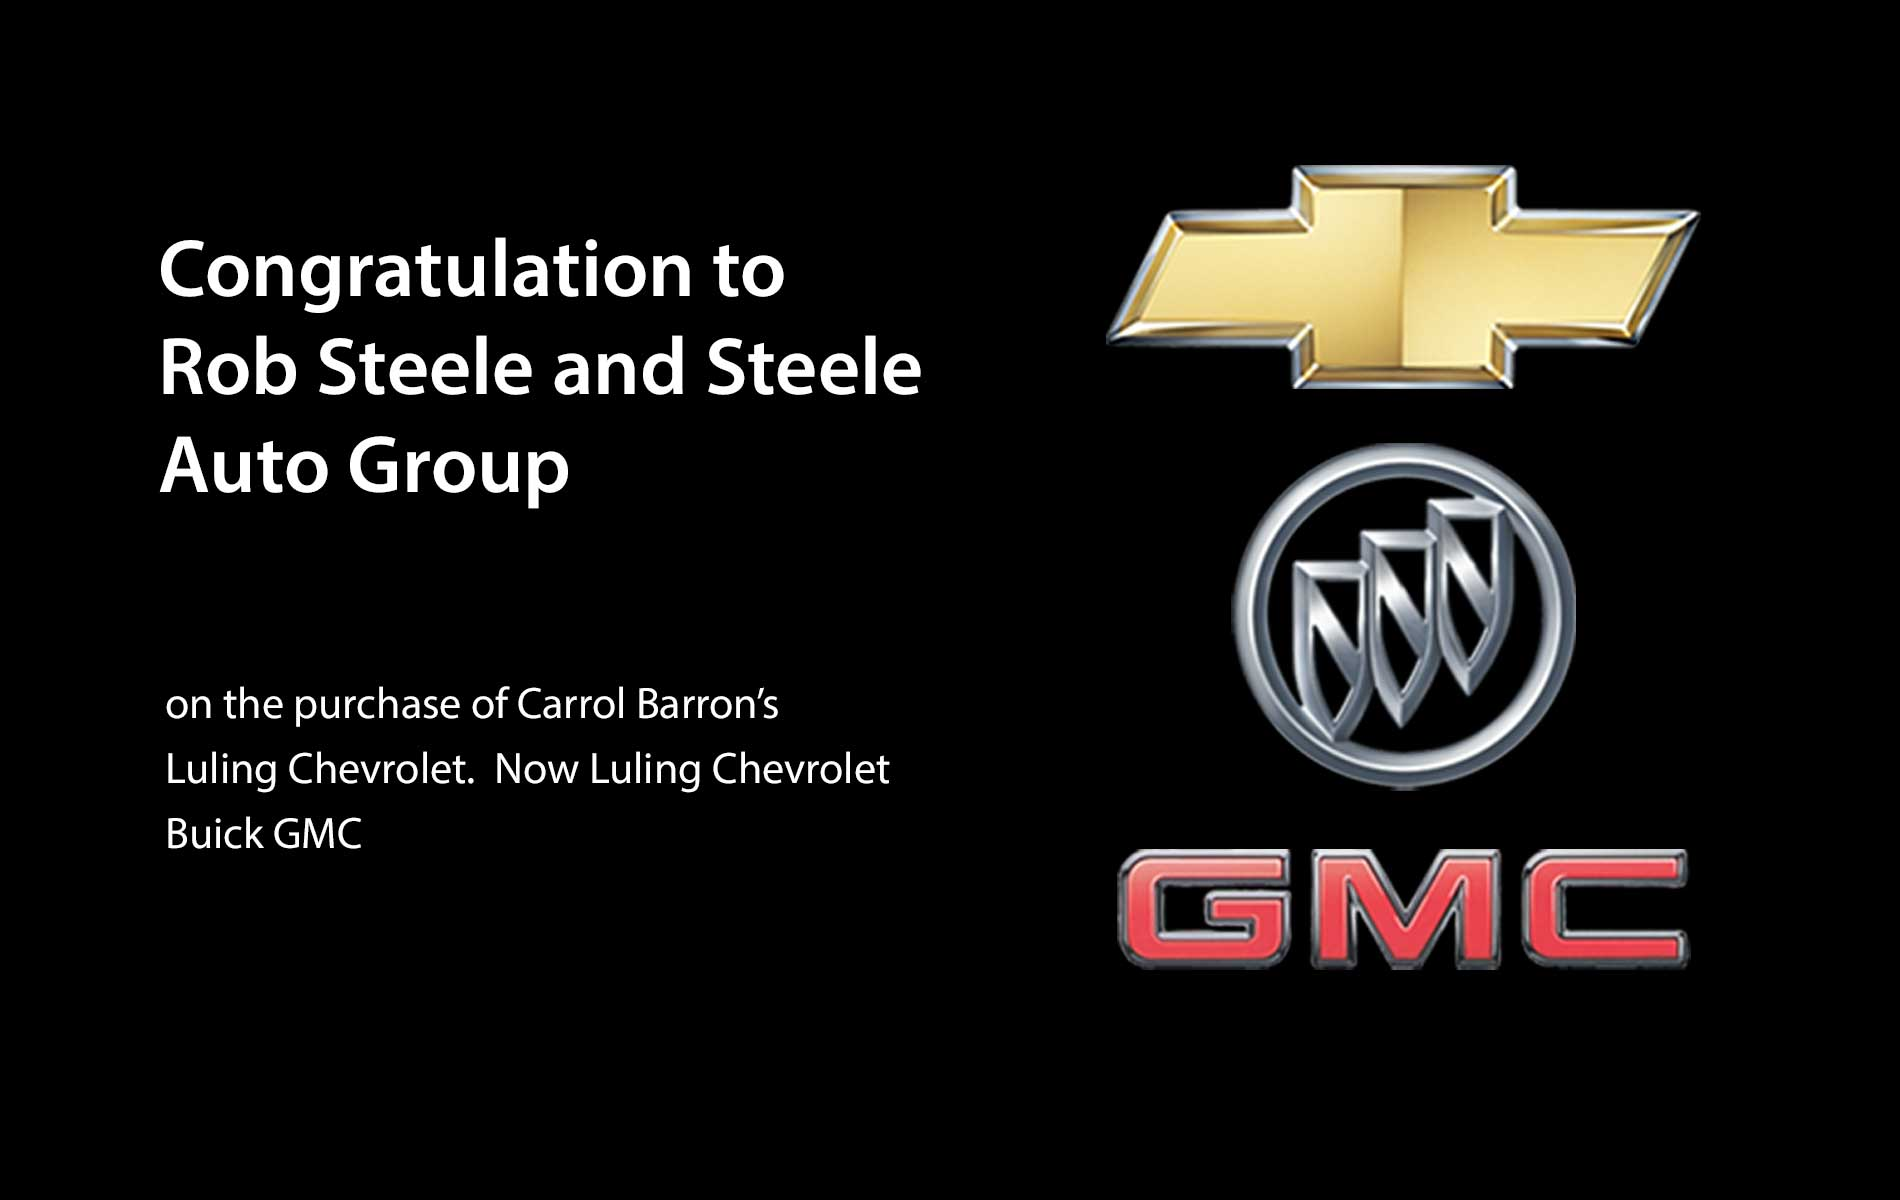 STEELE-CHEVY-BUICK-GMC-4-6-2020-1900x1200